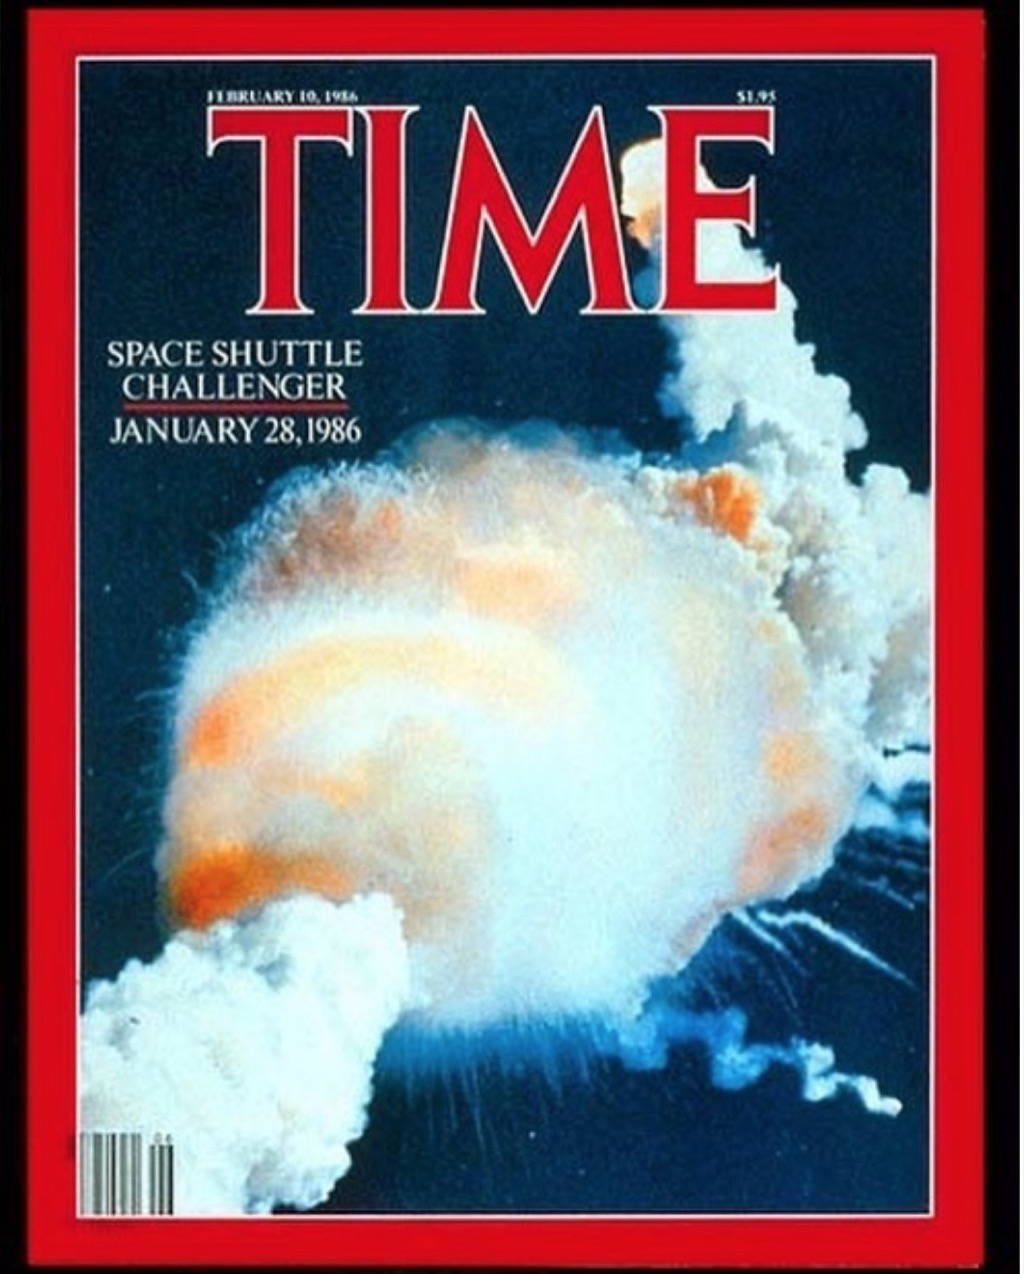 Time Magazine challenger explosion cover